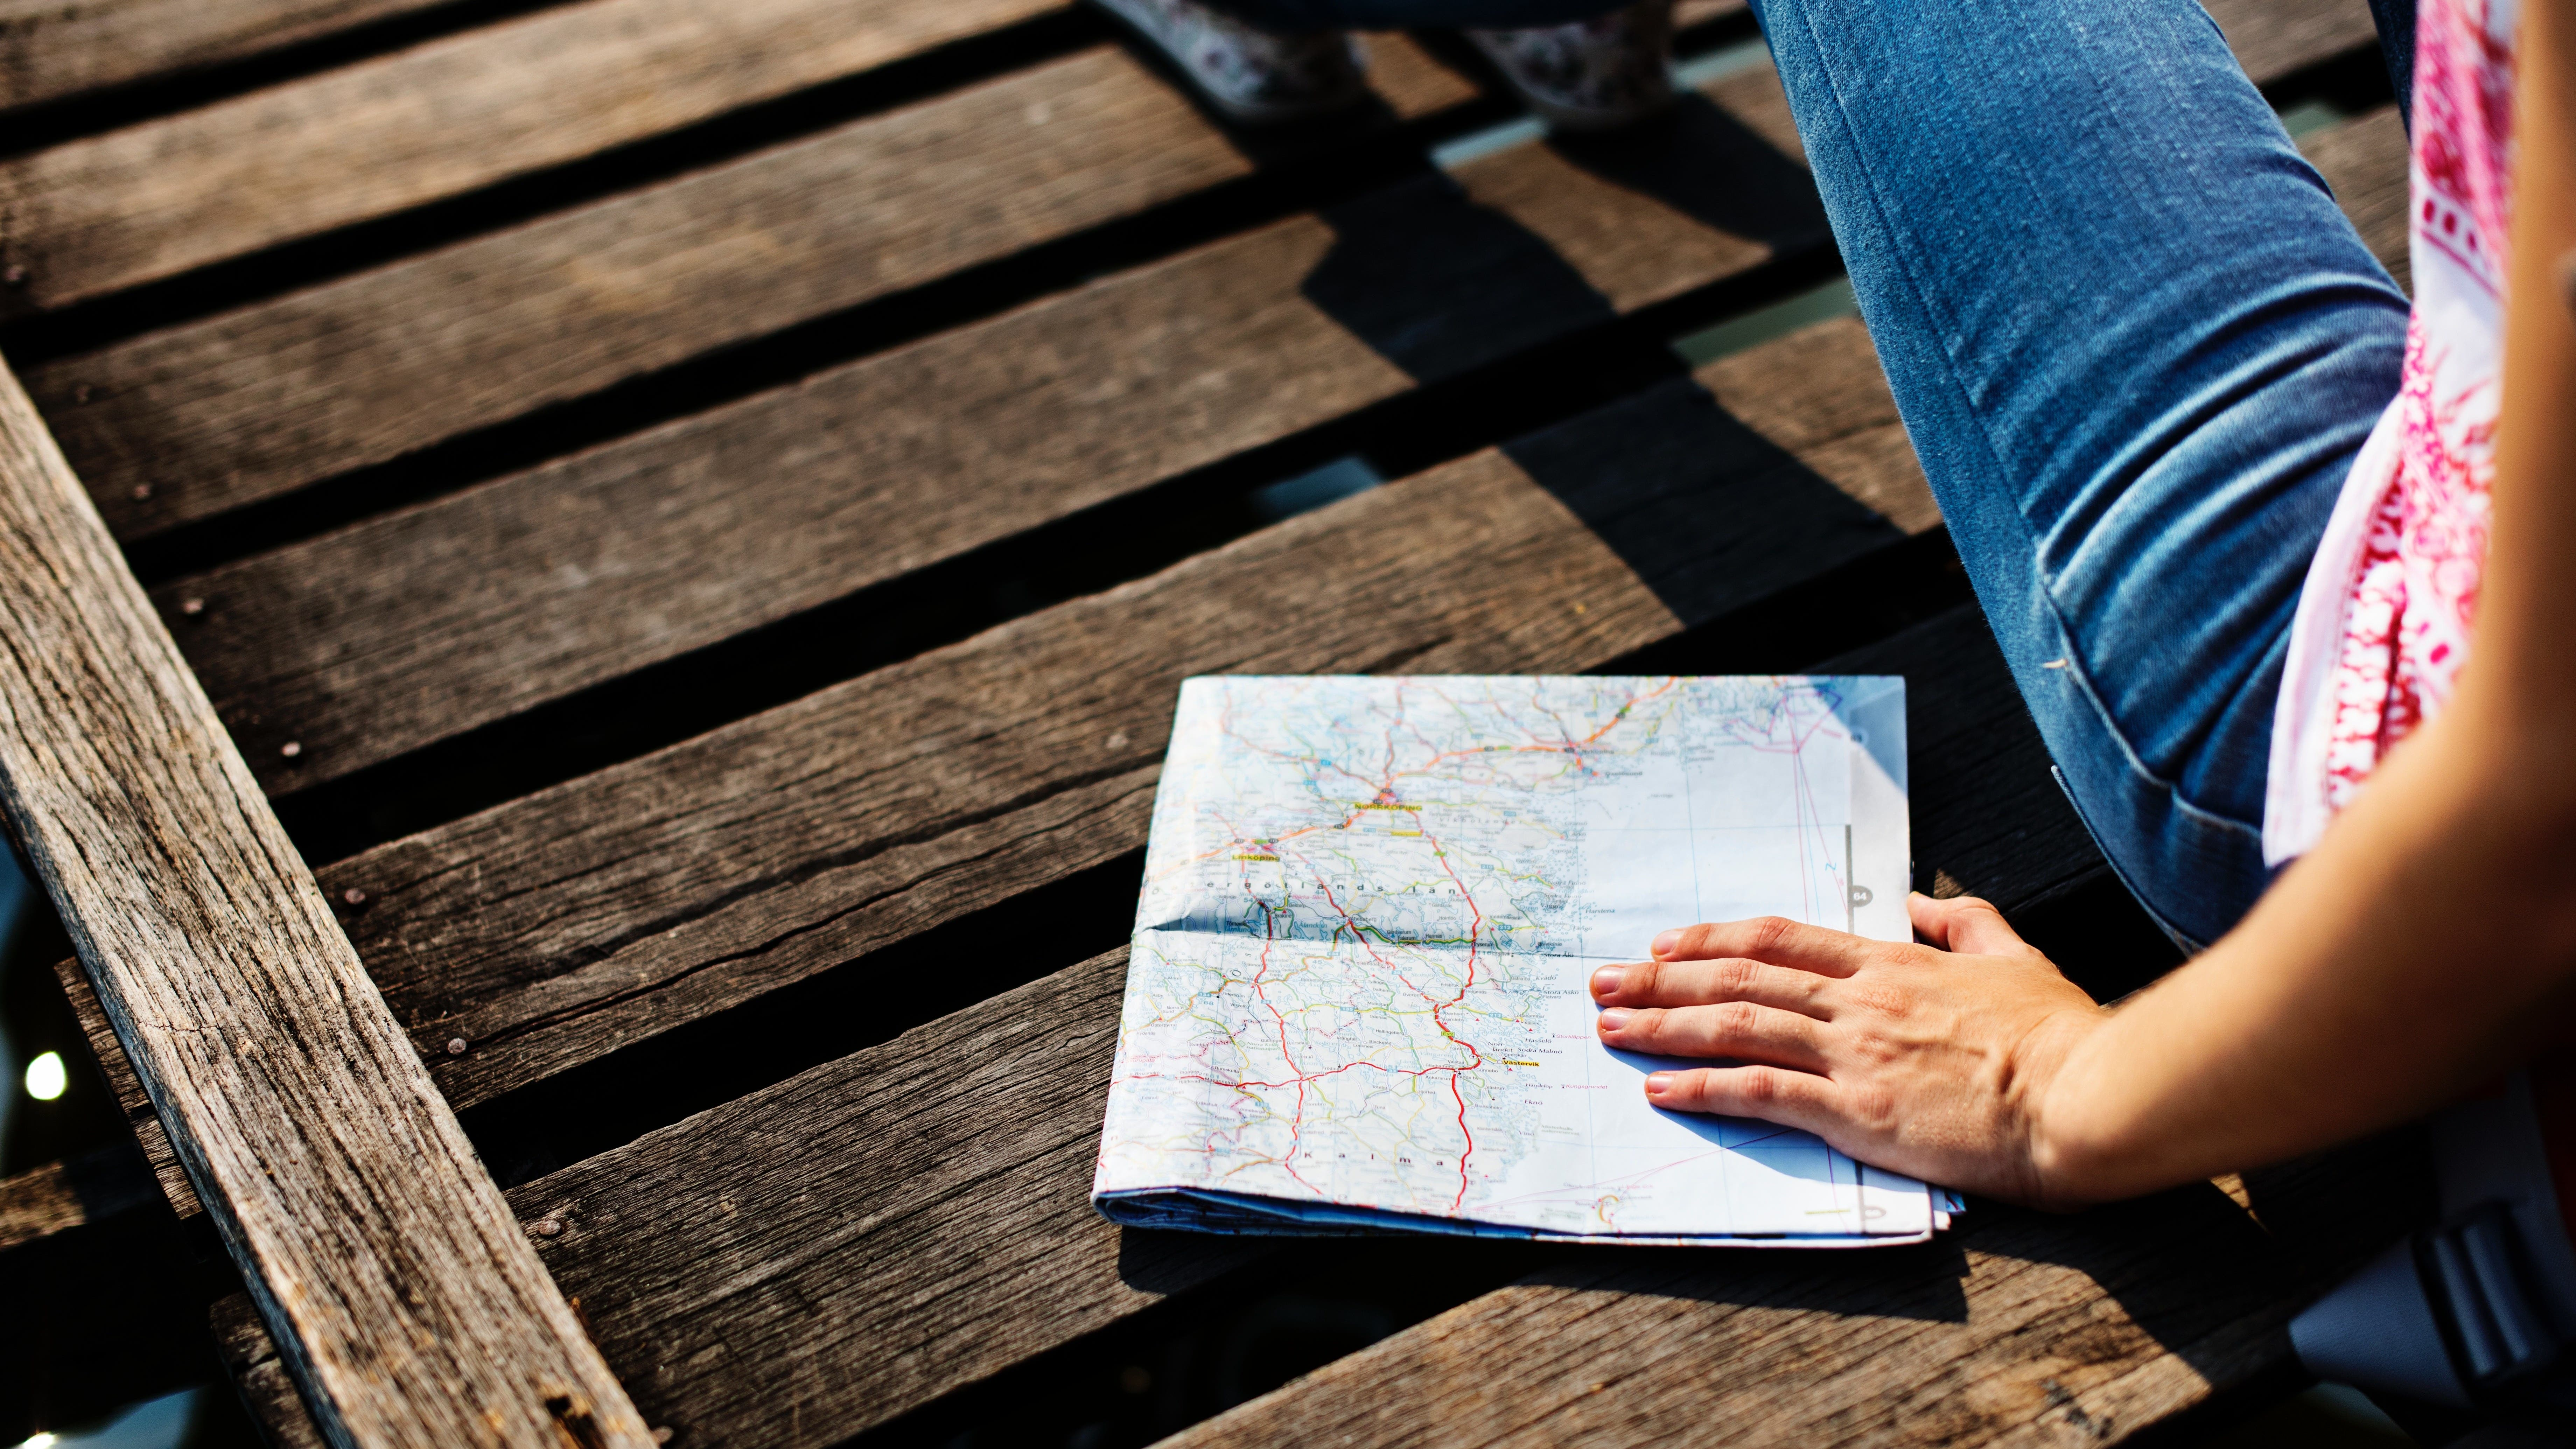 More than Maps: Exploring Geography